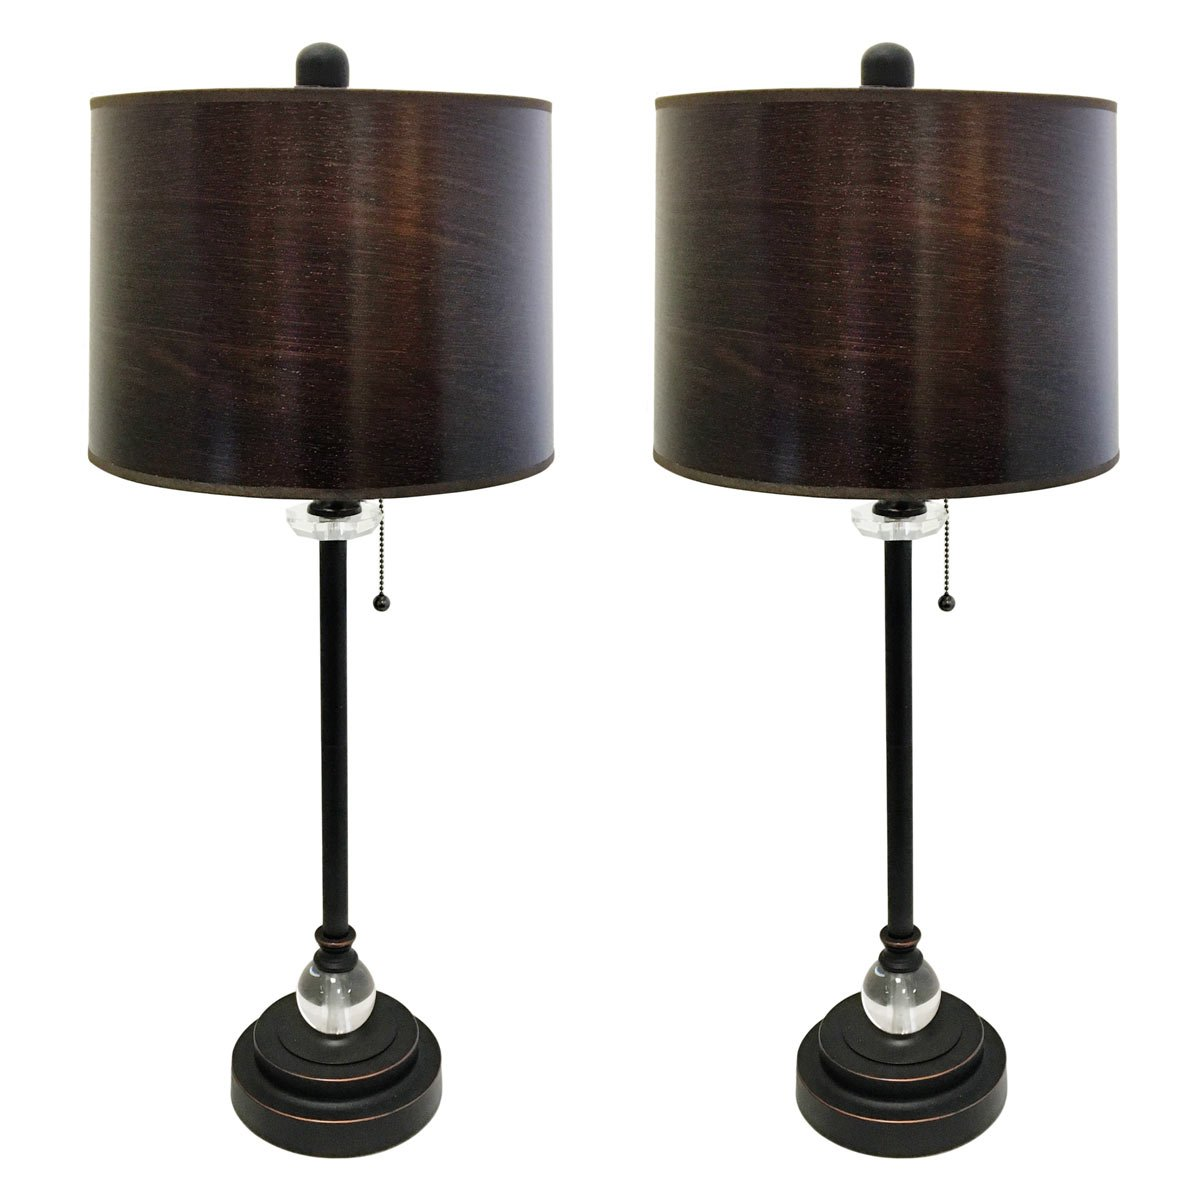 Royal Designs 28'' Crystal and Oil Rub Bronze Lamp with Brown Wood Texture Hardback Lamp Shade, Set of 2 by Royal Designs, Inc